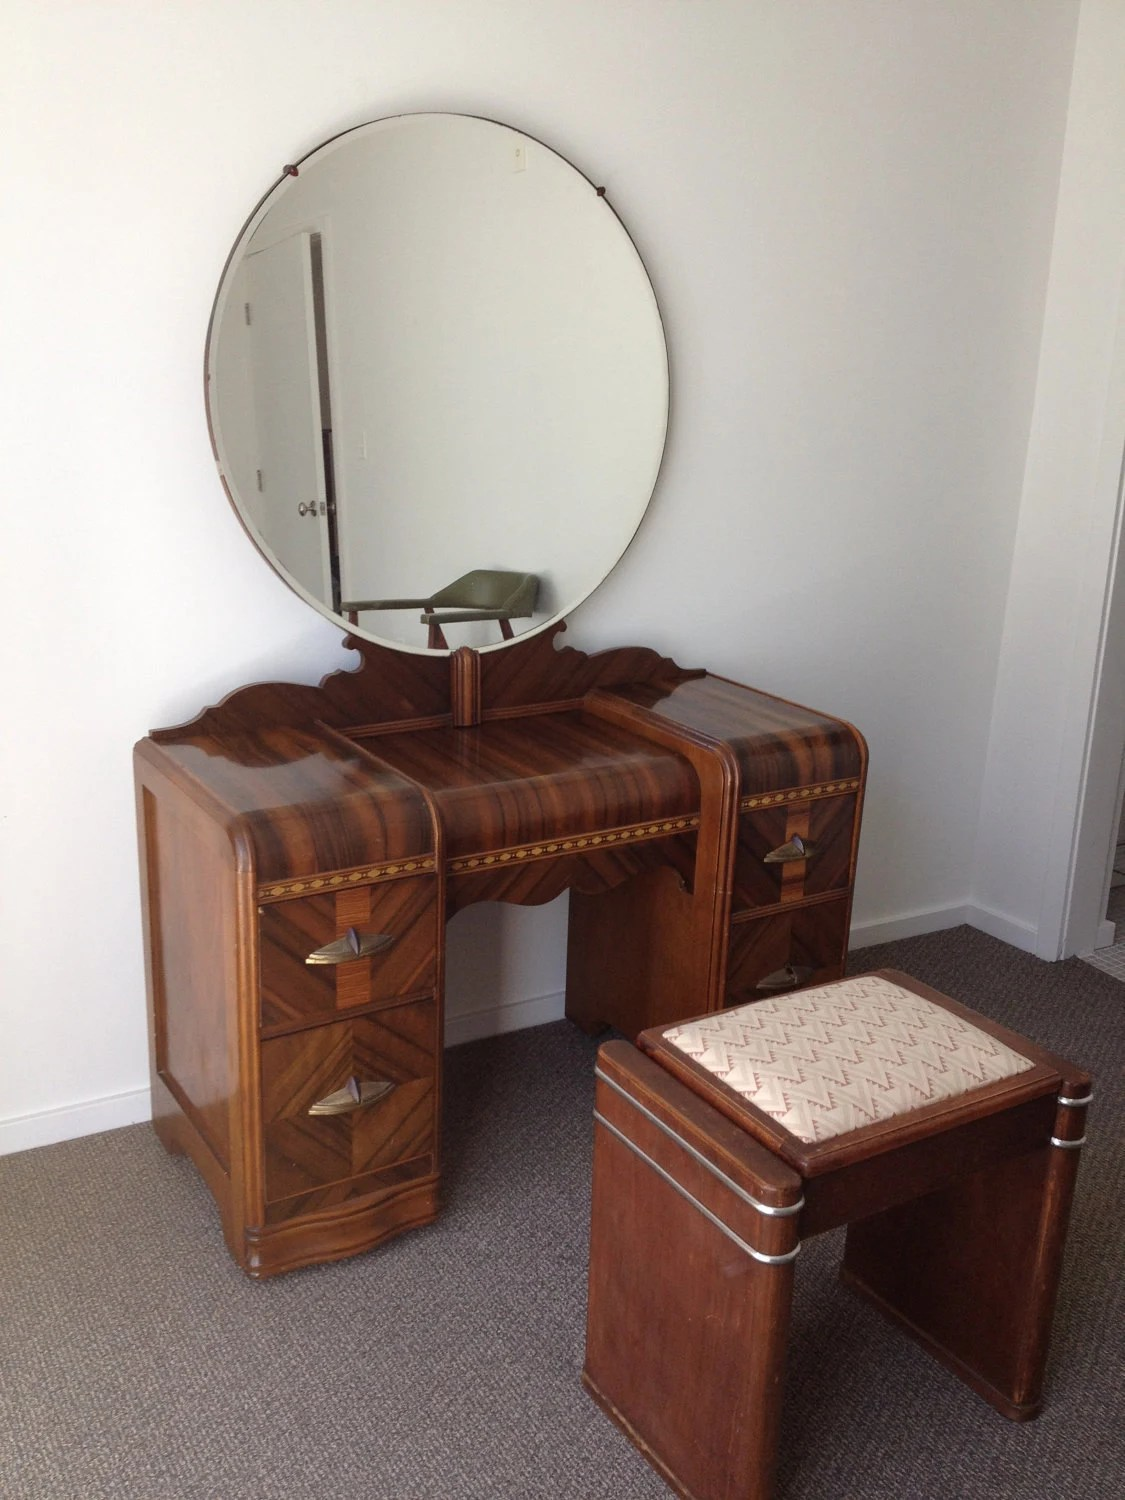 bedroom chair on gumtree banquet covers cheap ikea day bed melbourne  nazarm